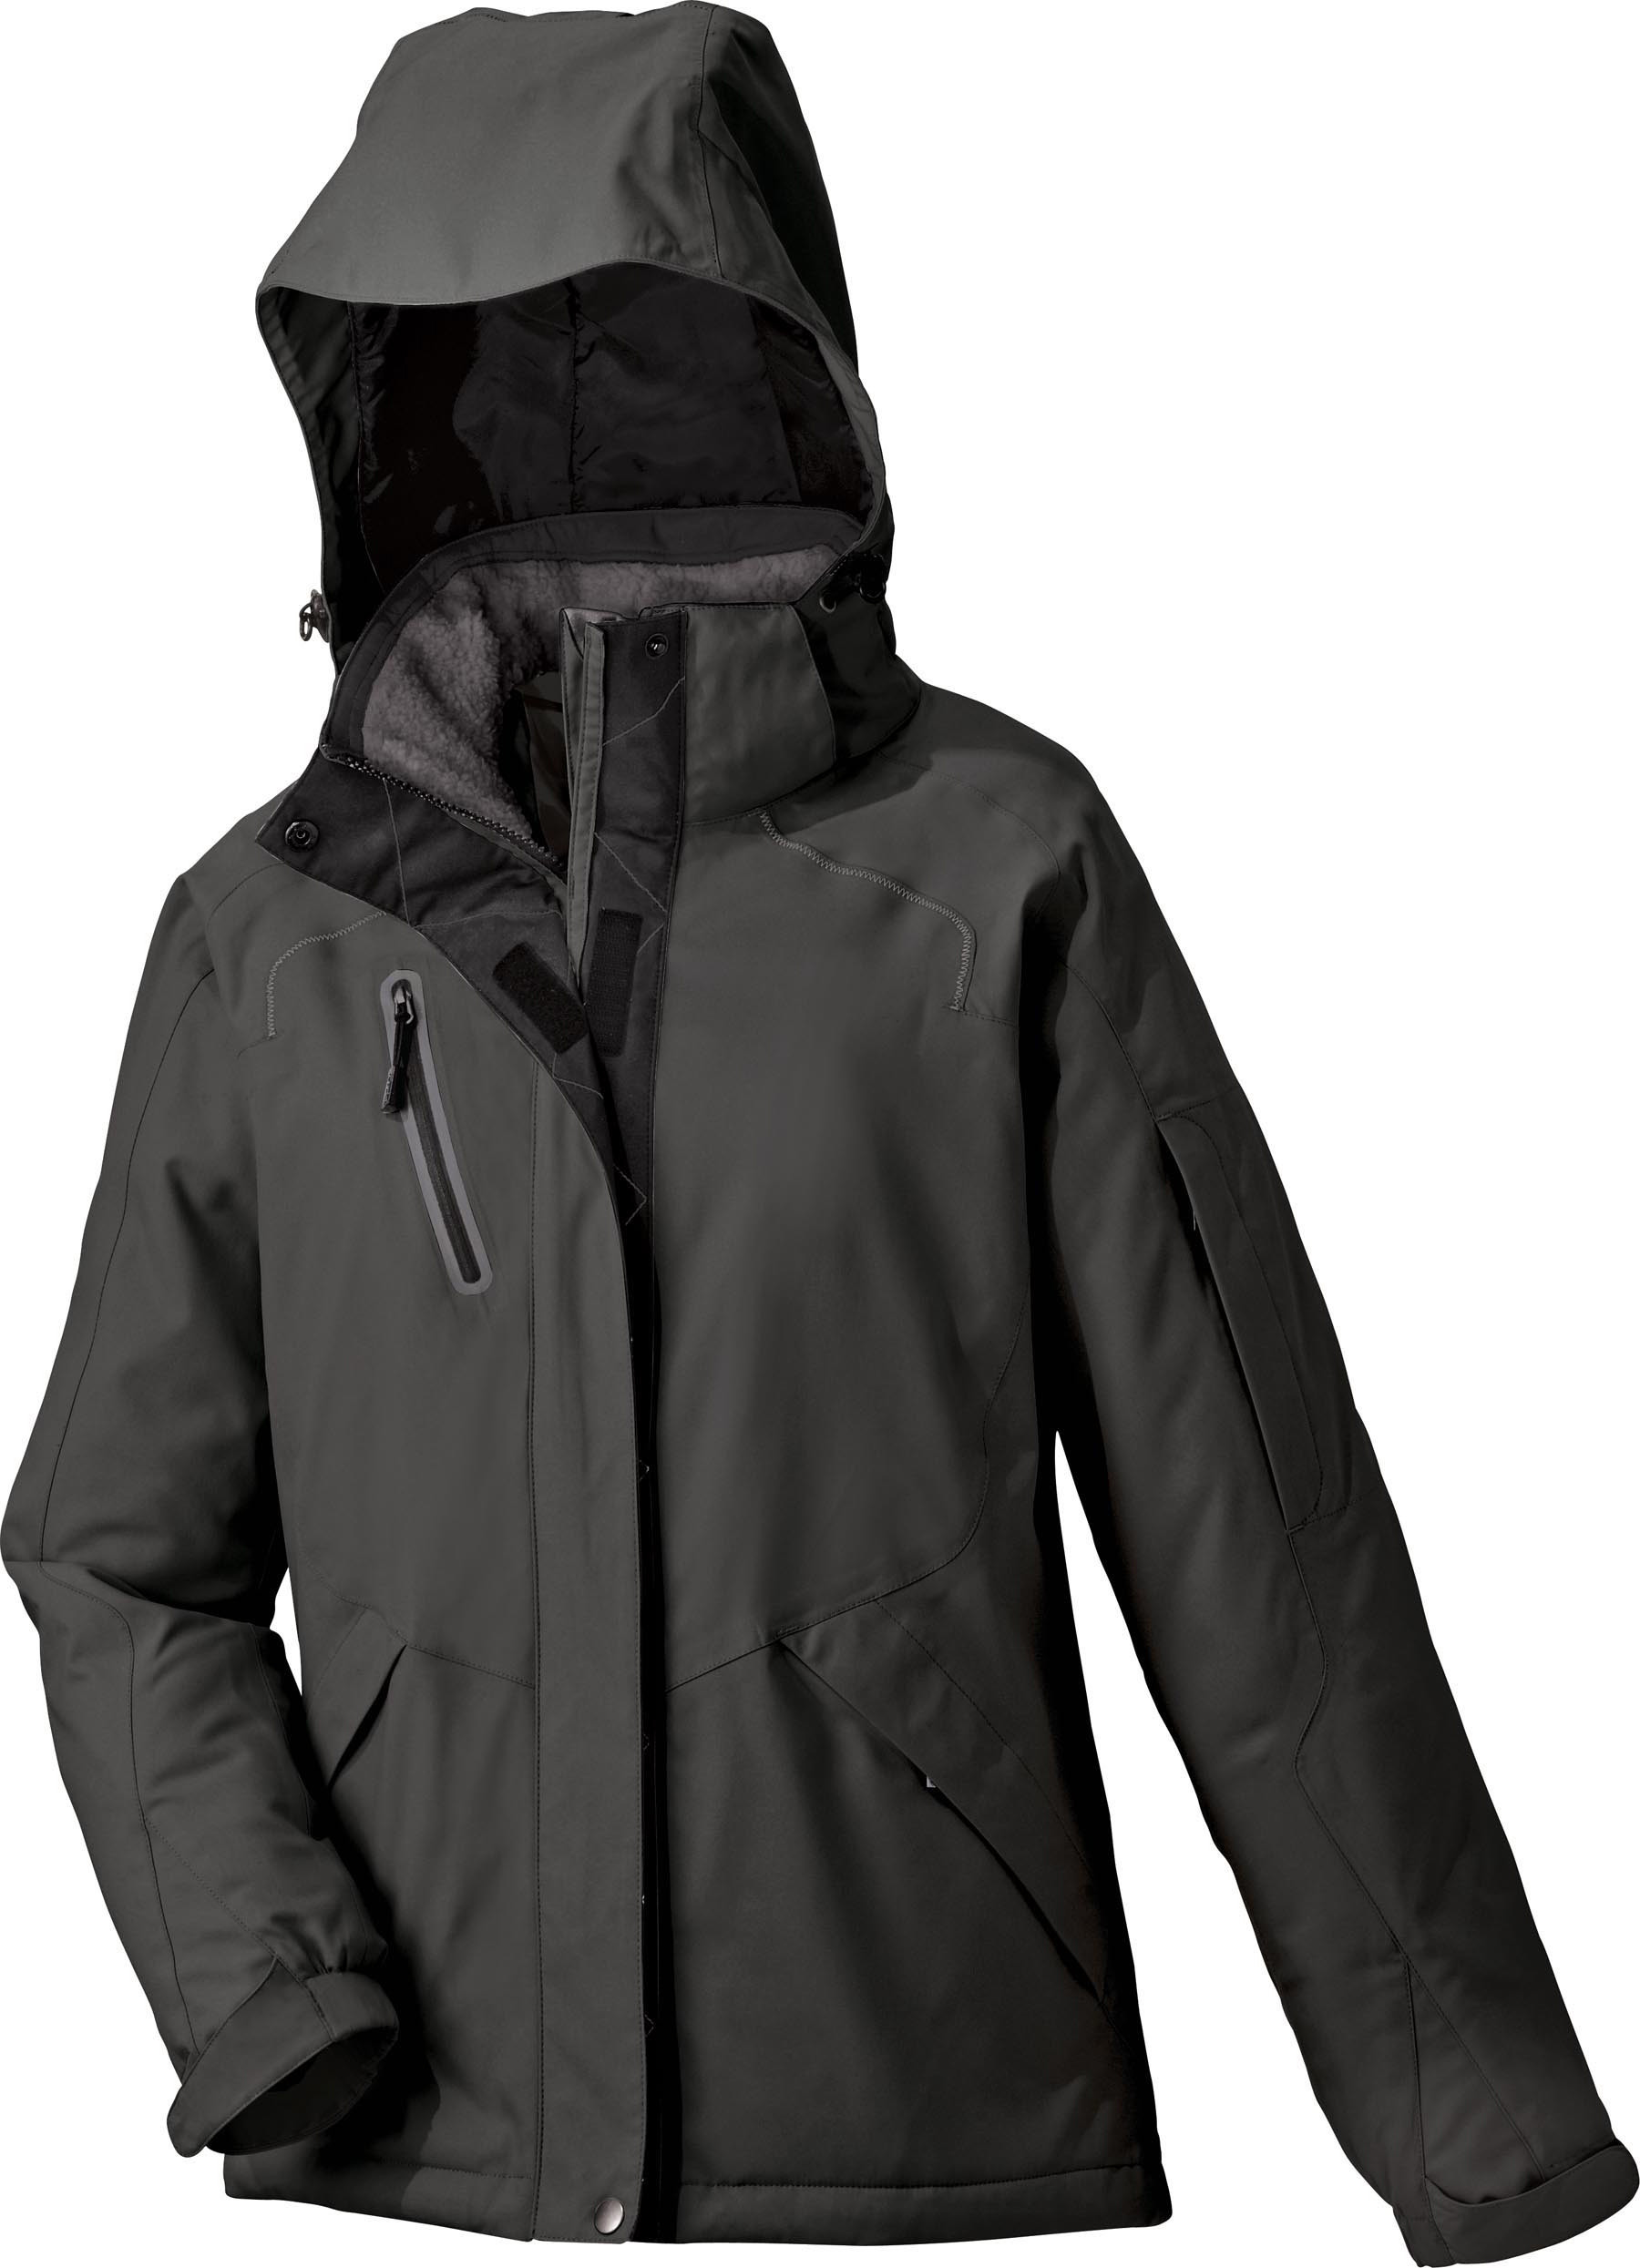 Ash City UTK 2 Warm.Logik 78651 - Adventure Ladies' ...